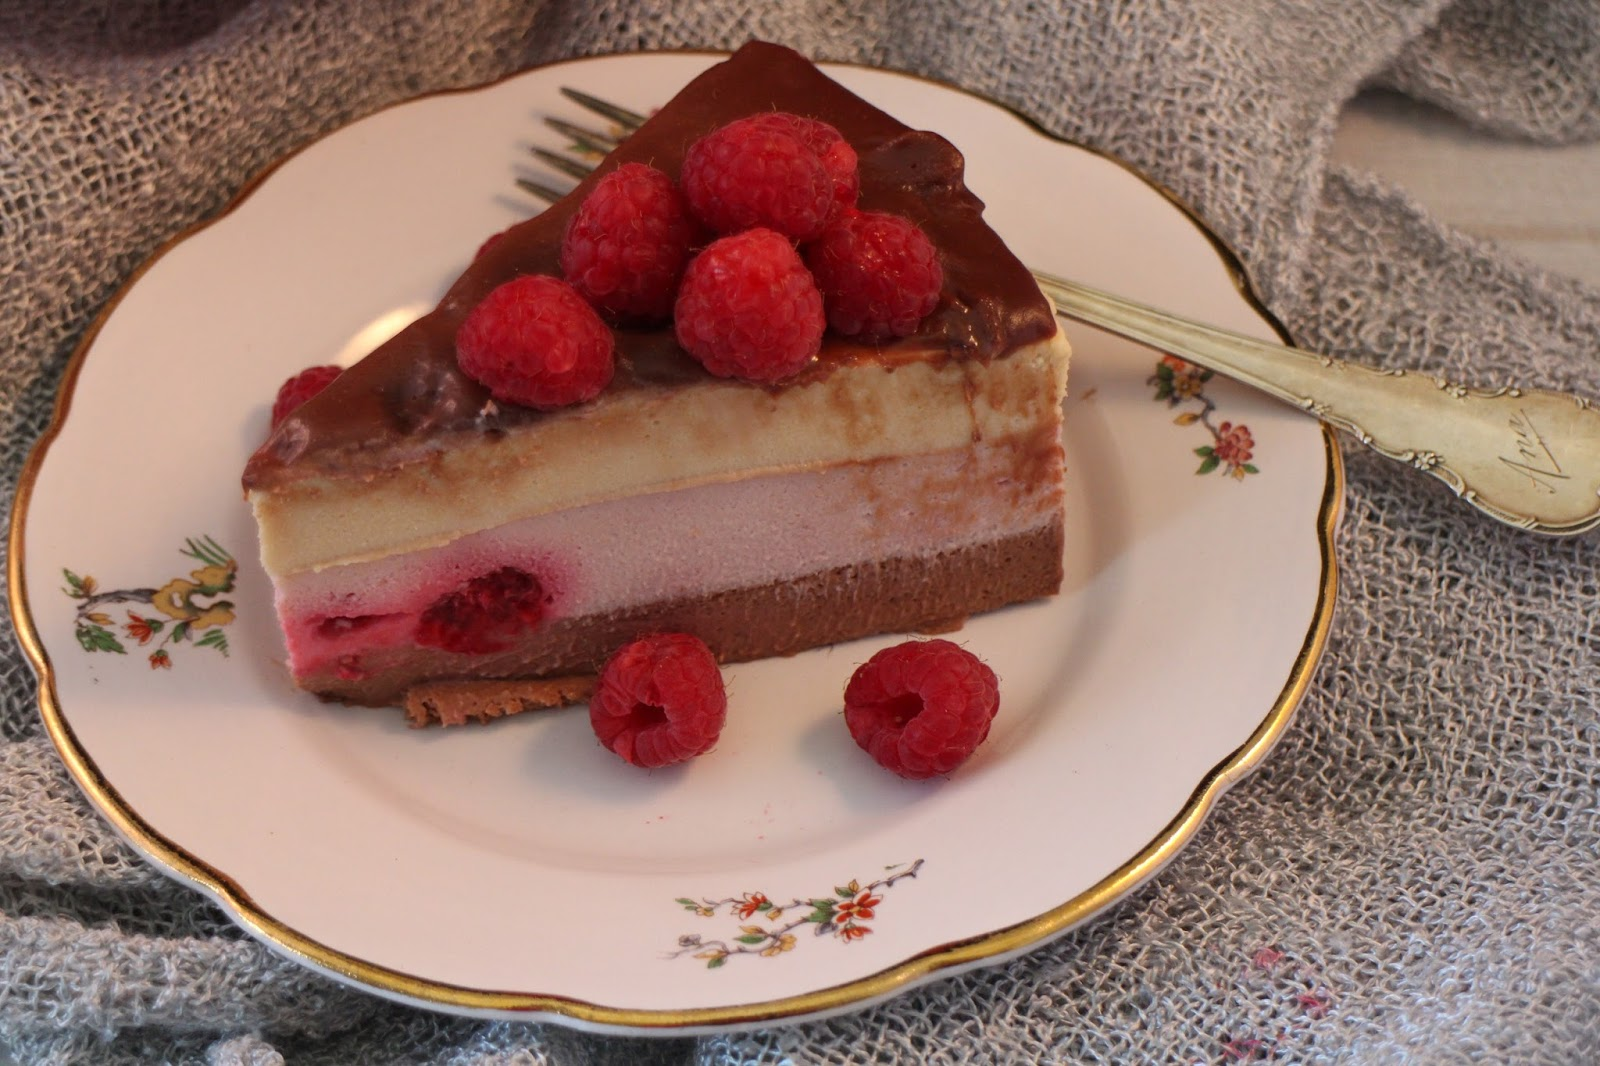 chocolate-raspberry-and-vanilla-mousse-tart, tarta-mousse-de-chocolate-frambuesas-y-vainilla